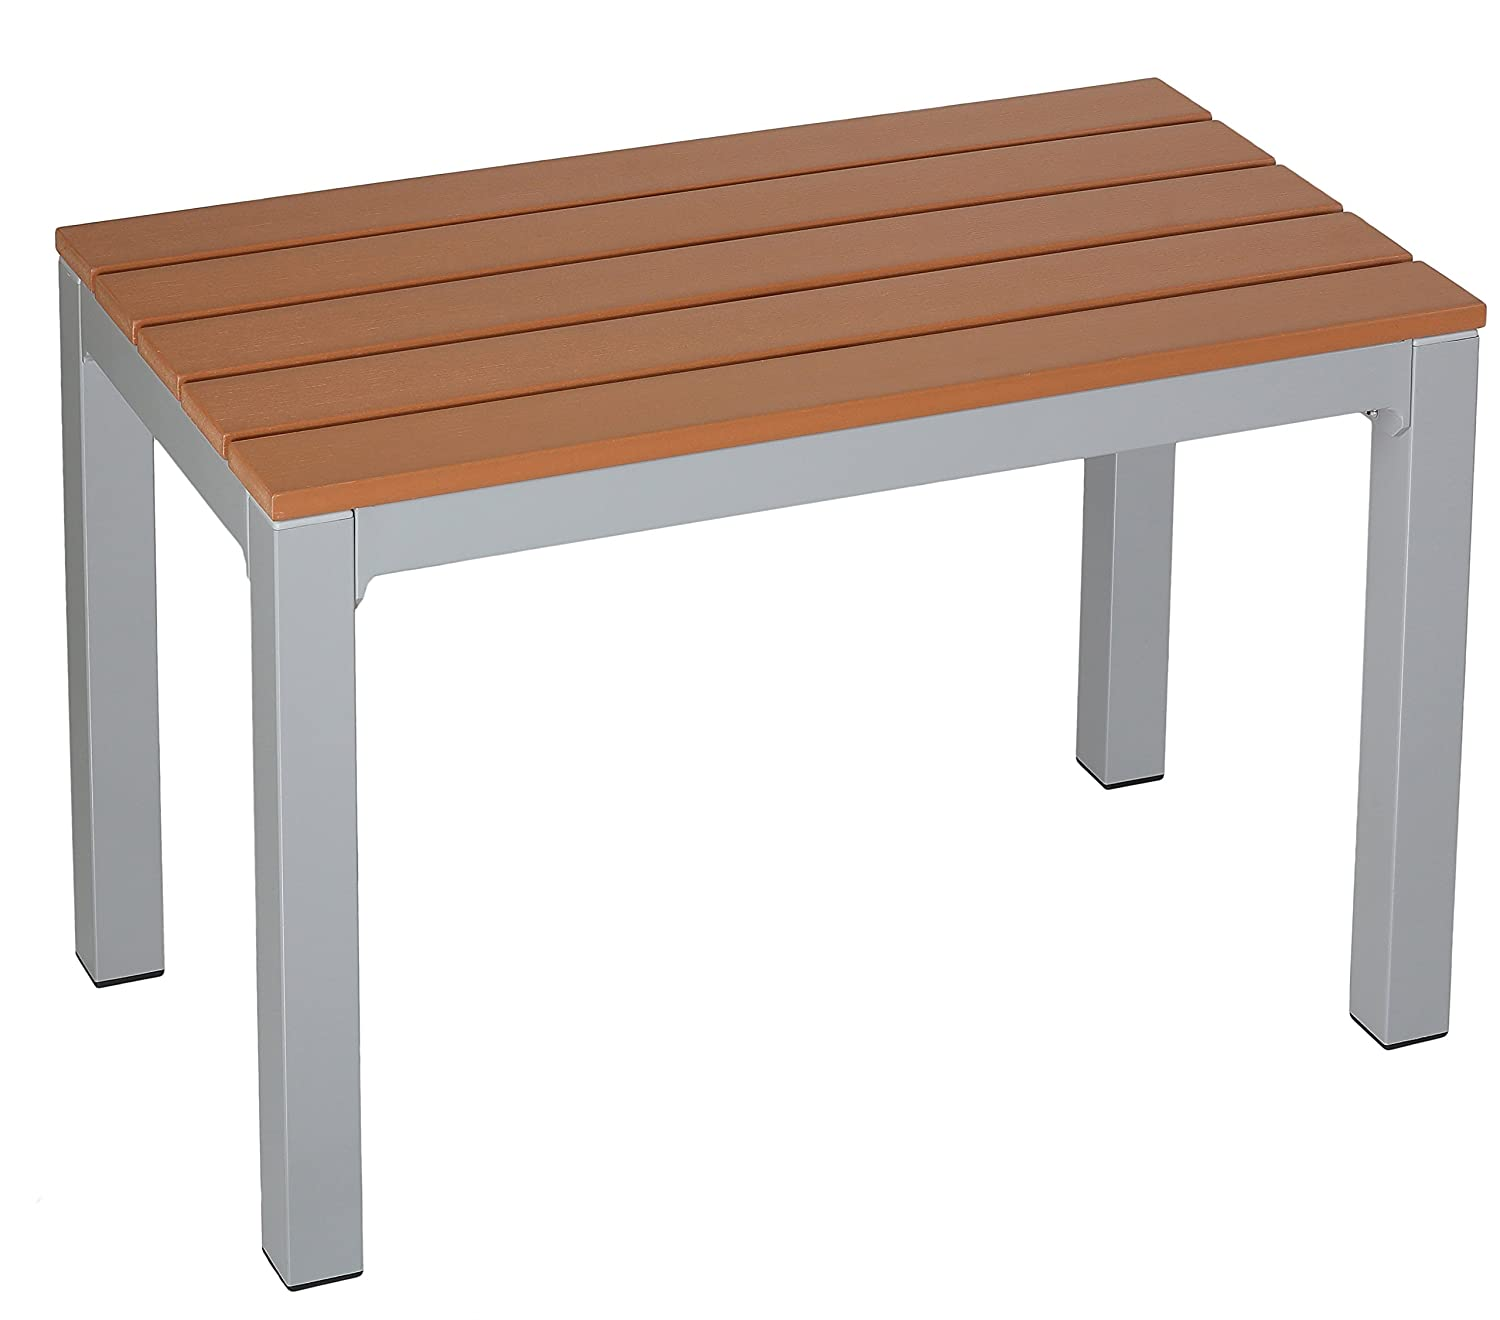 Avery Aluminum Outdoor Bench In Poly Wood Silver Teak Best: aluminum benches